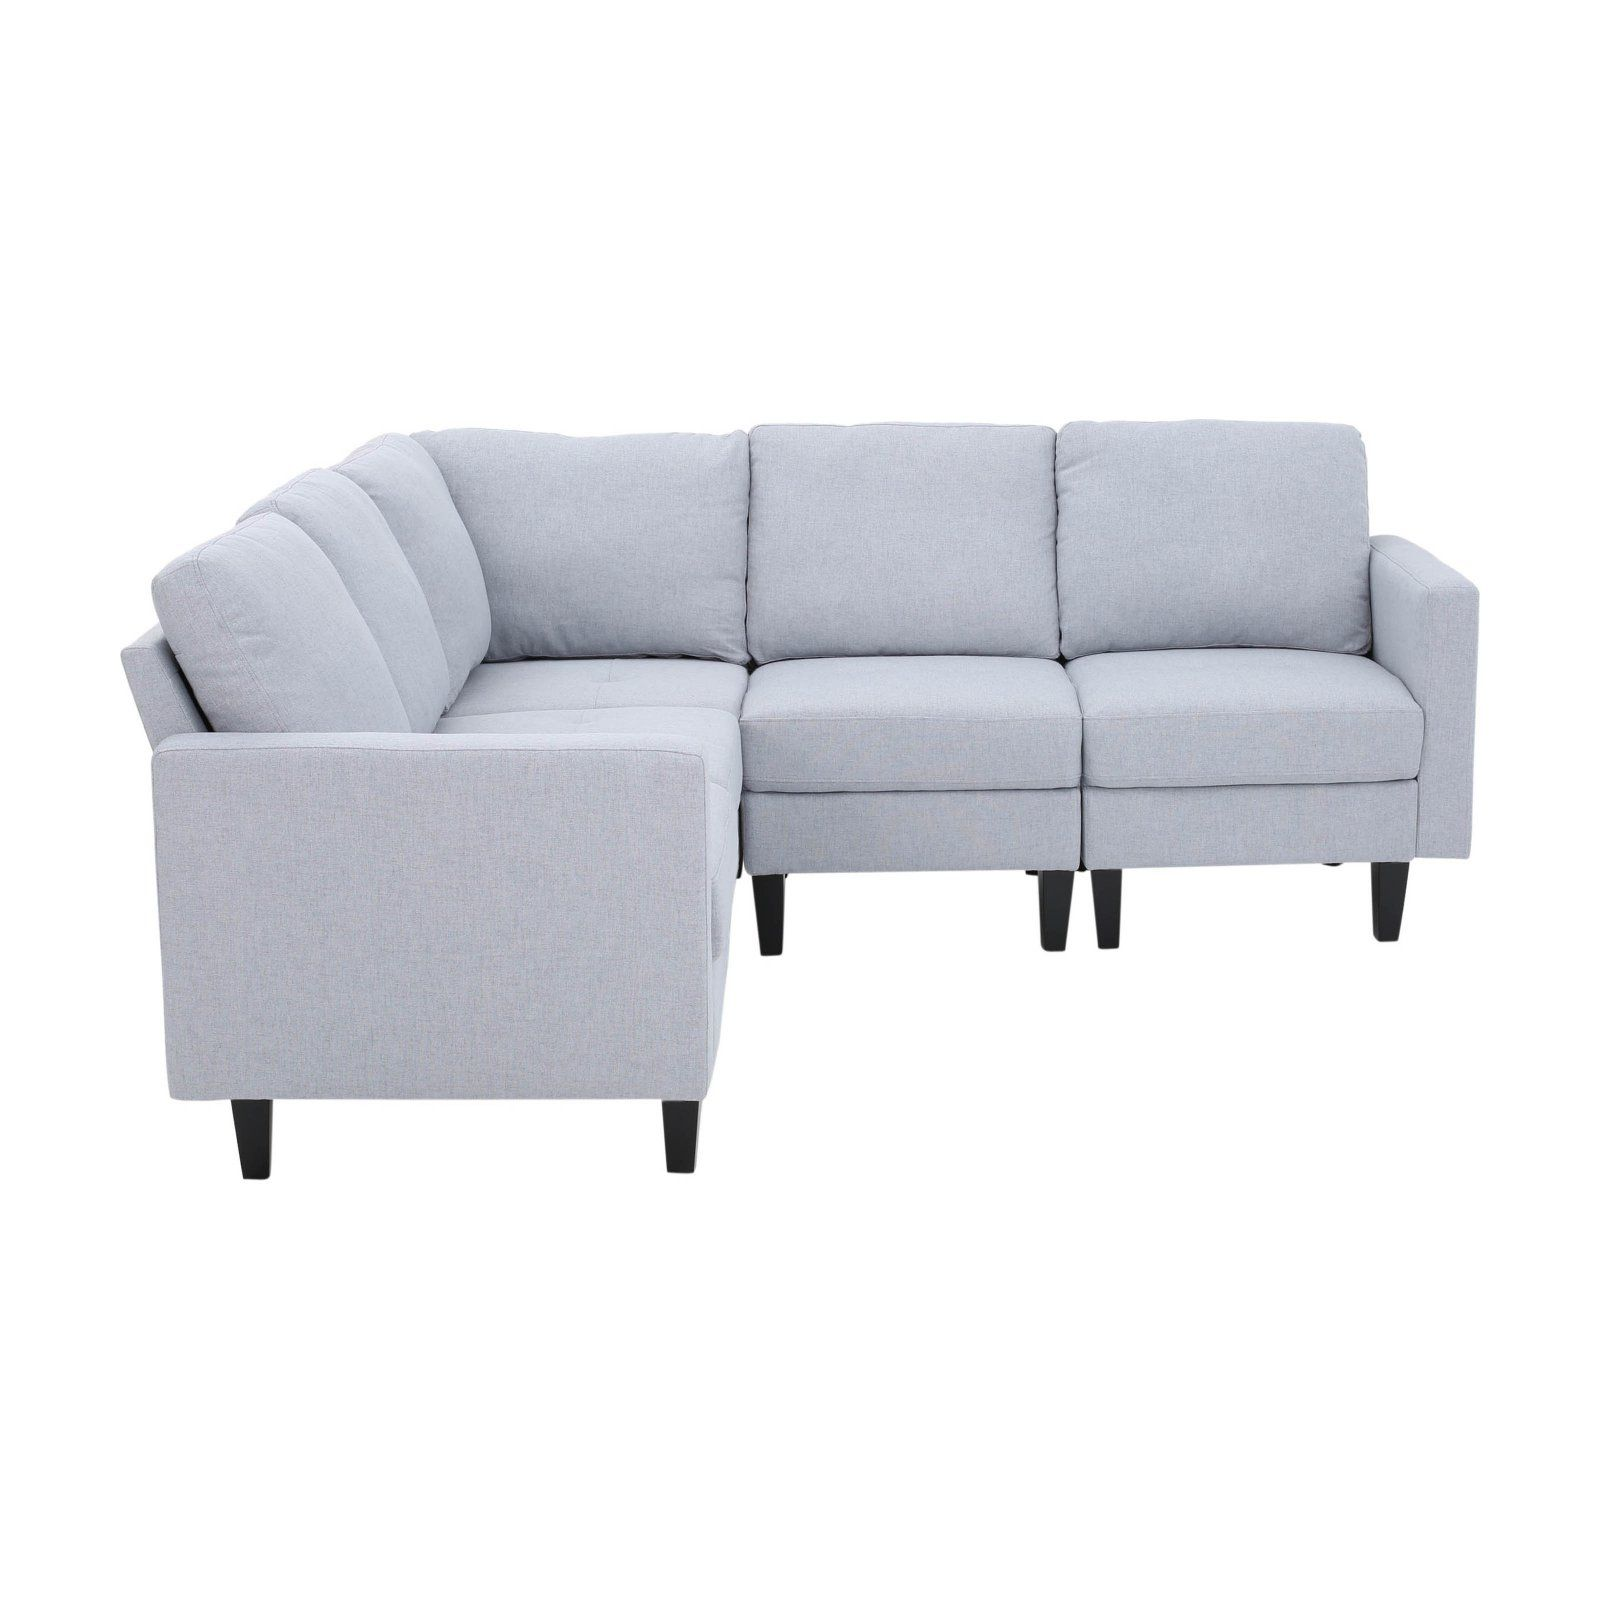 Zahra Tufted Sectional Sofa Light Gray Tufted Sectional Sofa Tufted Sectional Sectional Sofa